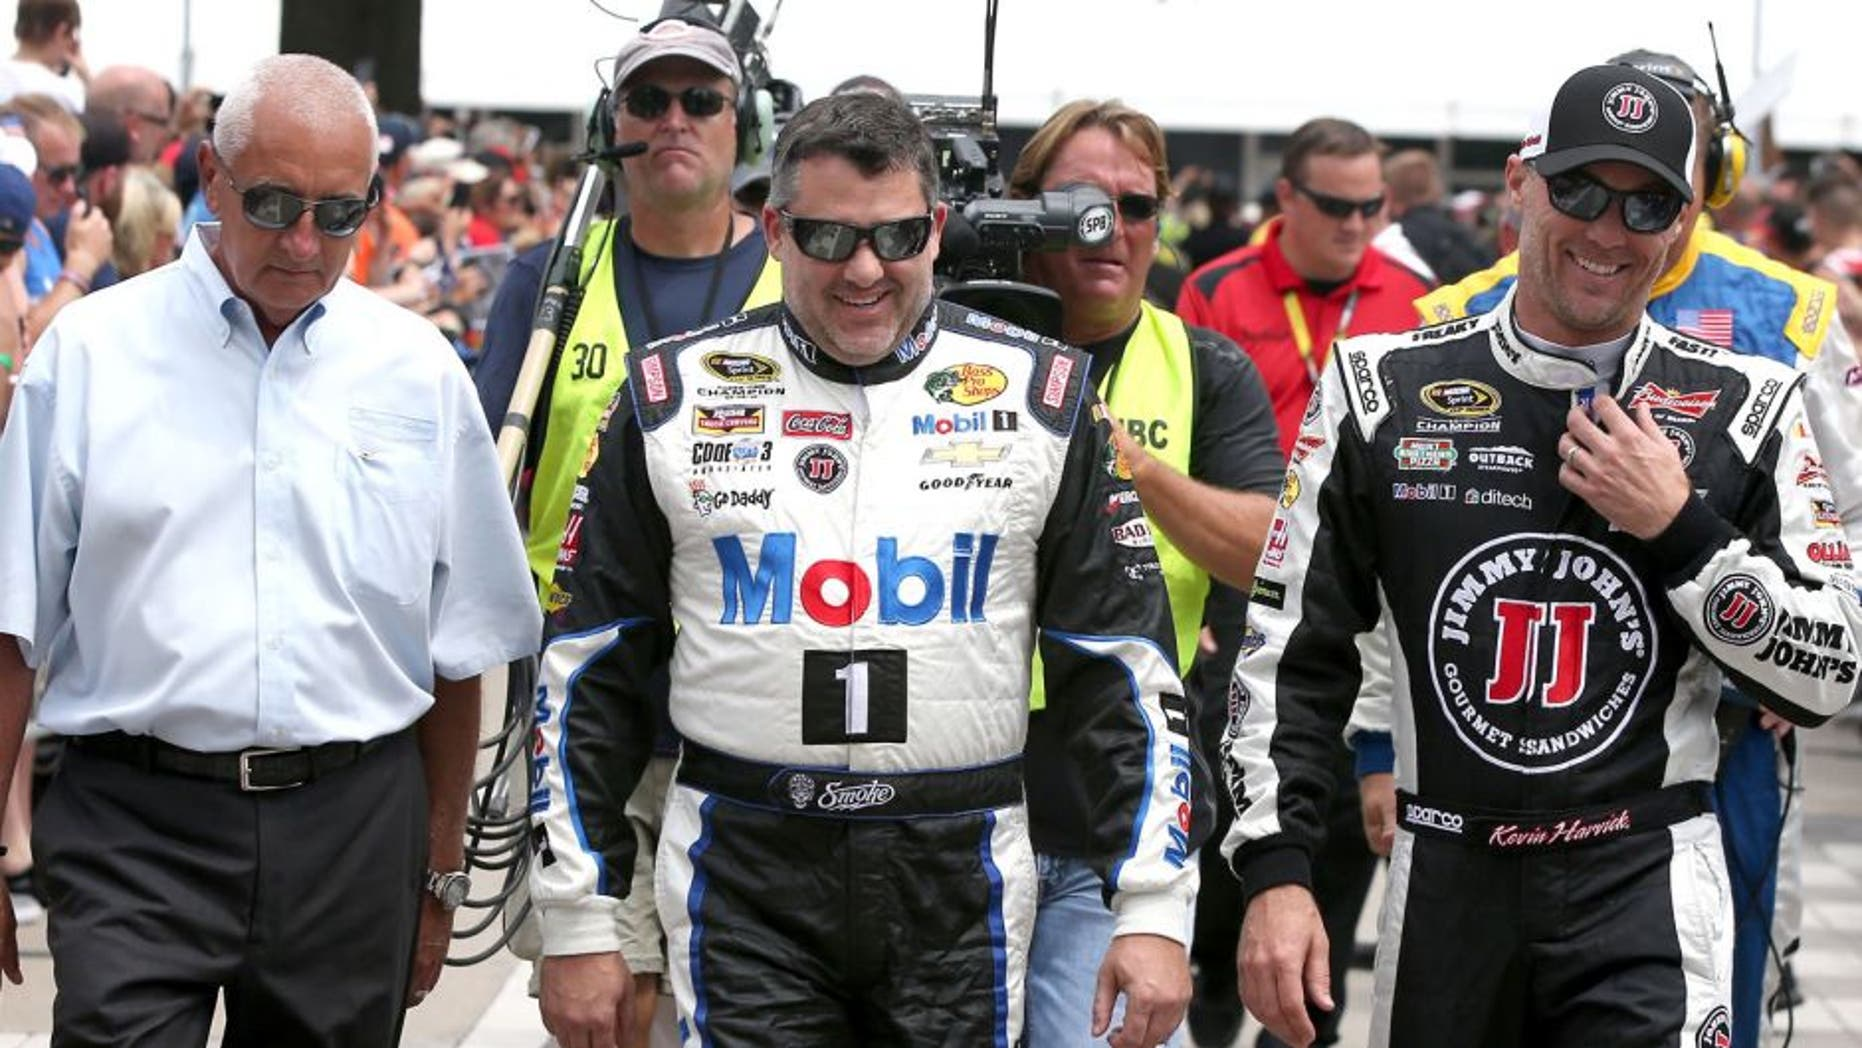 INDIANAPOLIS, IN - JULY 26: Tony Stewart, driver of the #14 Mobil 1/Bass Pro Shops Chevrolet, and Kevin Harvick, driver of the #4 Jimmy John's/Budweiser Chevrolet, walk along The Yard of Bricks prior to being introduced for the NASCAR Sprint Cup Series Crown Royal Presents the Jeff Kyle 400 at the Brickyard at Indianapolis Motor Speedway on July 26, 2015 in Indianapolis, Indiana. (Photo by Sean Gardner/NASCAR via Getty Images)